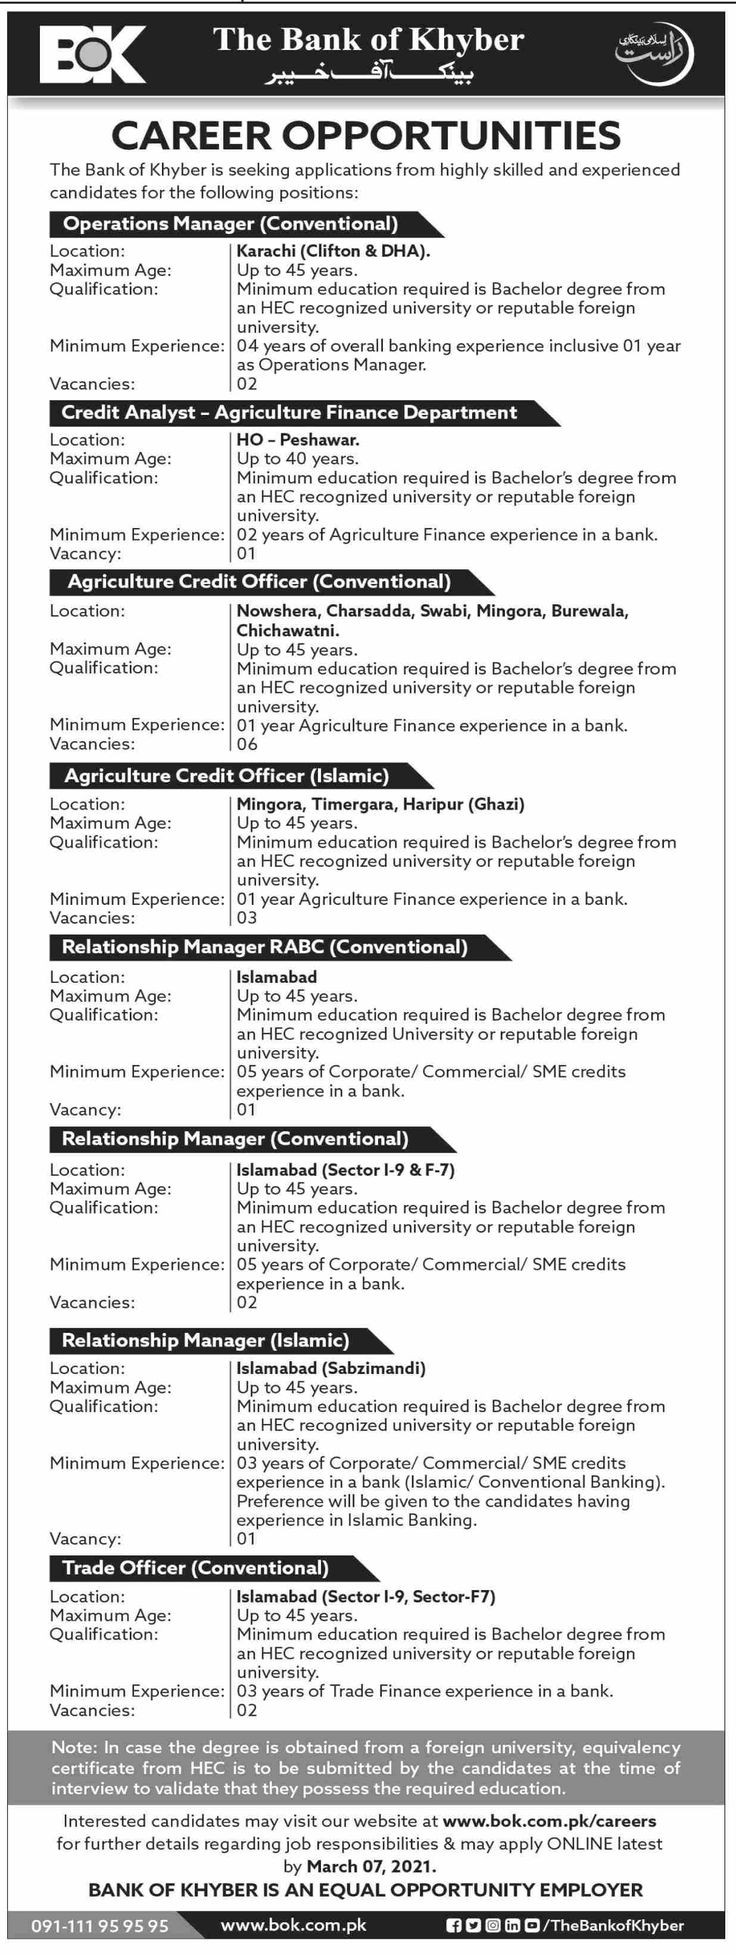 The Bank of Khyber BOK Karachi Jobs 2021 Latest For Operation Manager, Credit Analyst, Relationship Manager & more